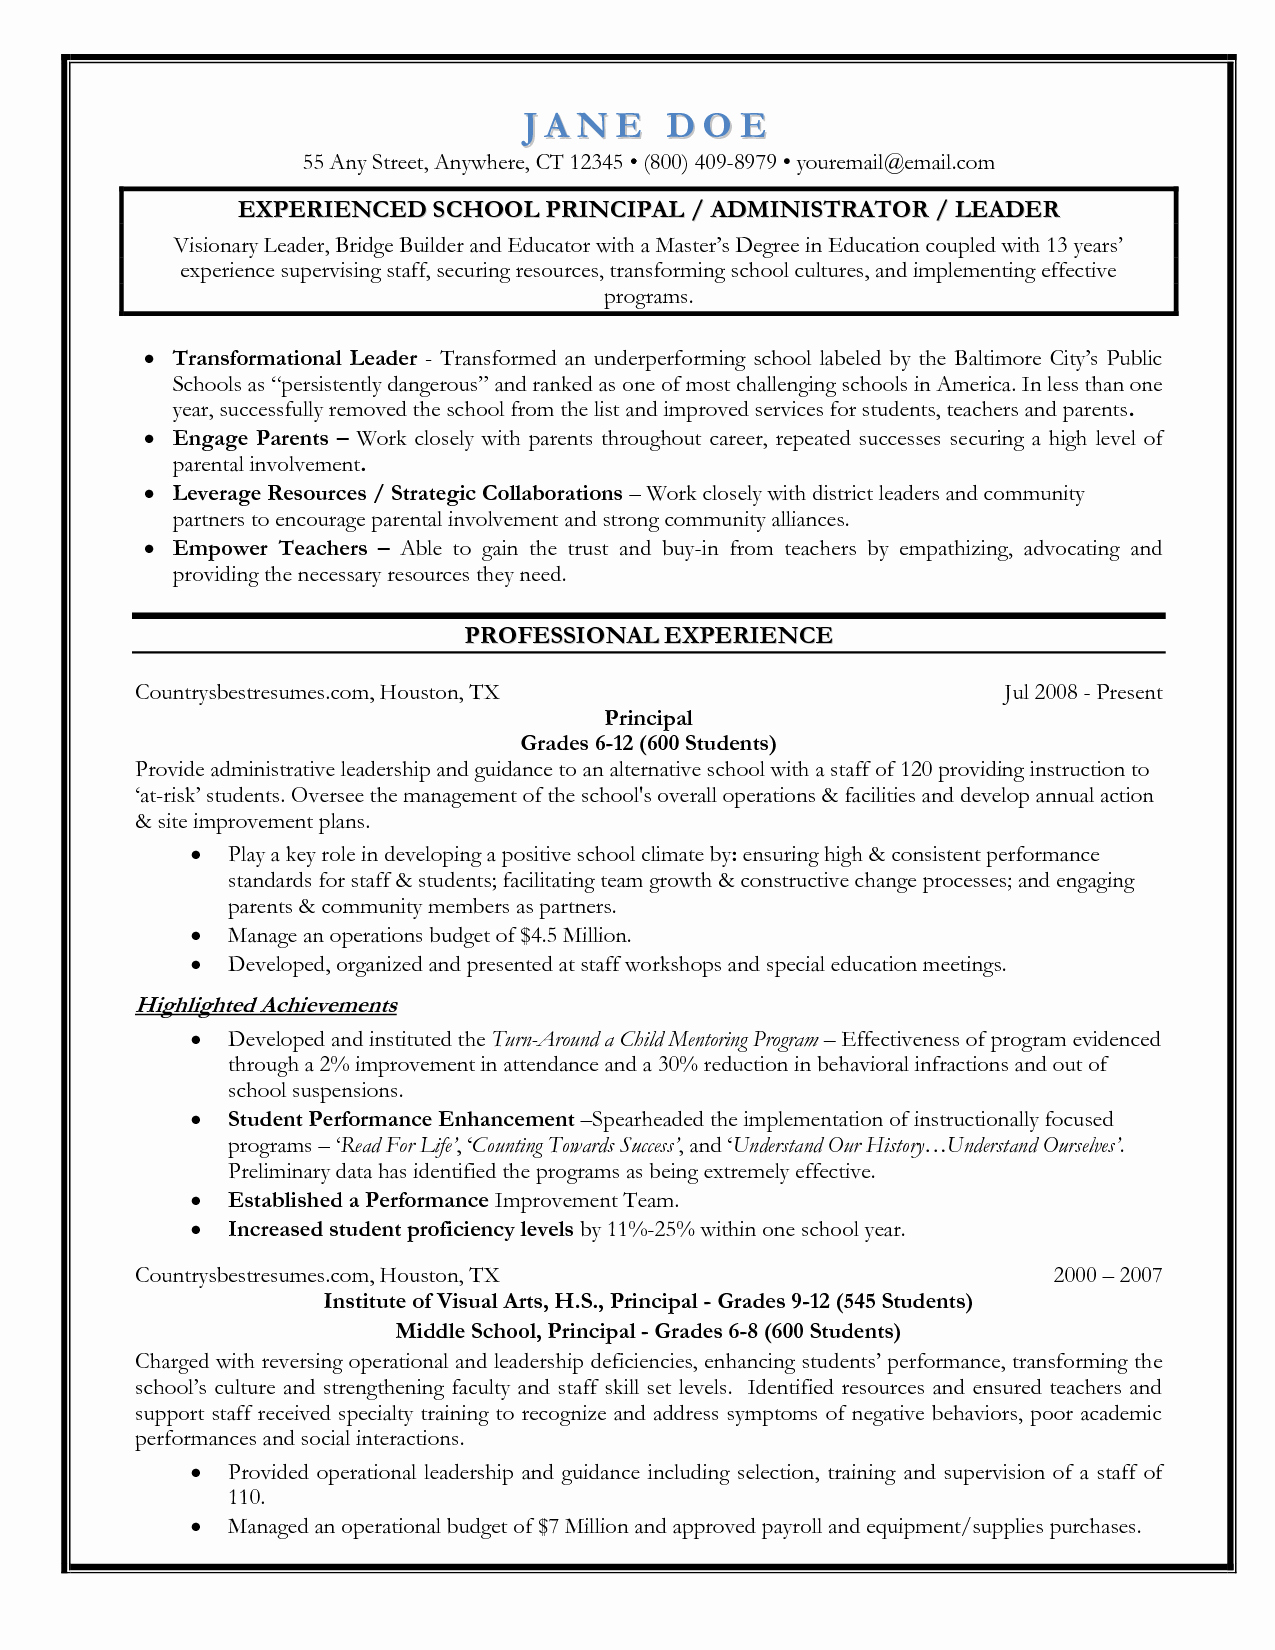 Sample assistant Principal Resume Lovely Entry Level assistant Principal Resume Templates